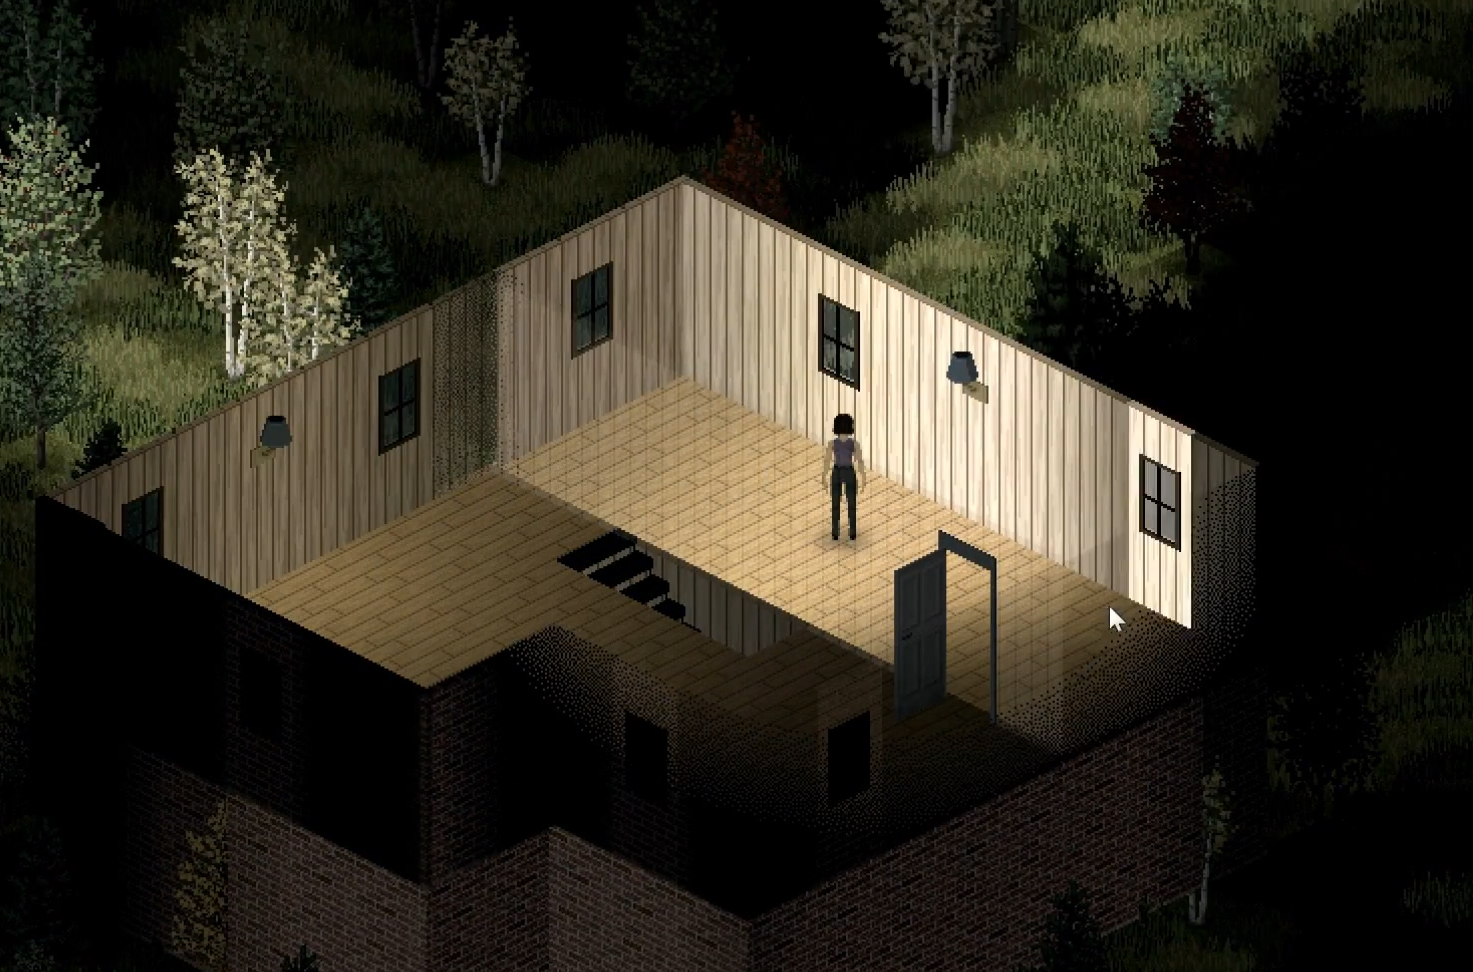 Project Zomboid is the ultimate in zombie survival. Alone or in MP: you loot, build, craft, fight, farm and fish in a struggle to survive. A hardcore RPG skillset, a ...